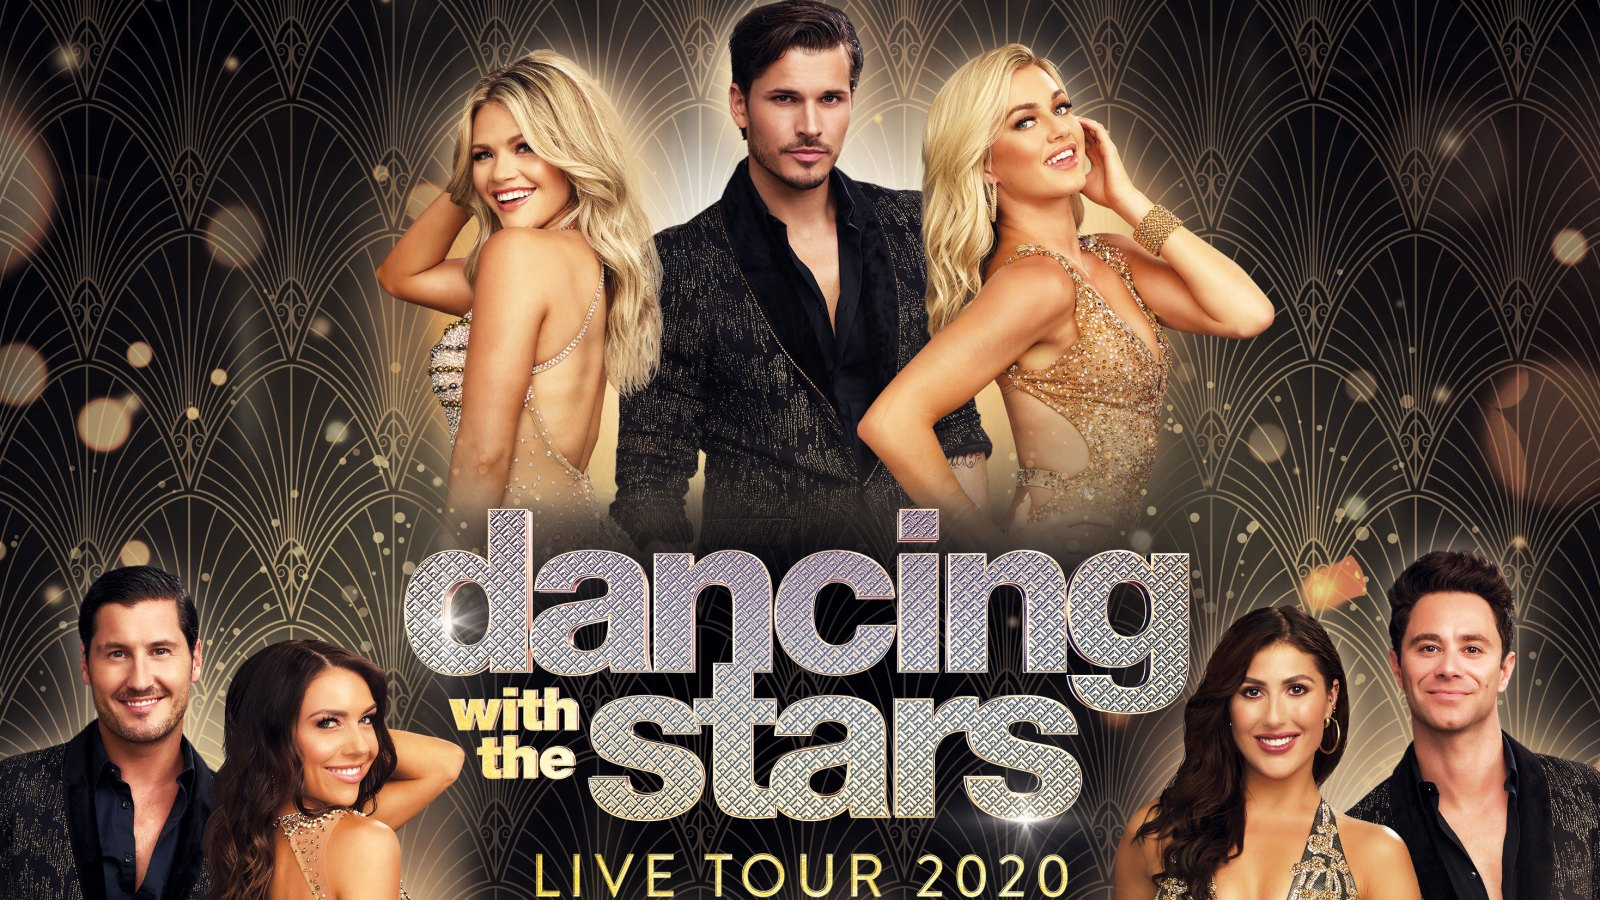 Dwts Tour 2020.Dancing With The Stars Live Tour 2020 Announced